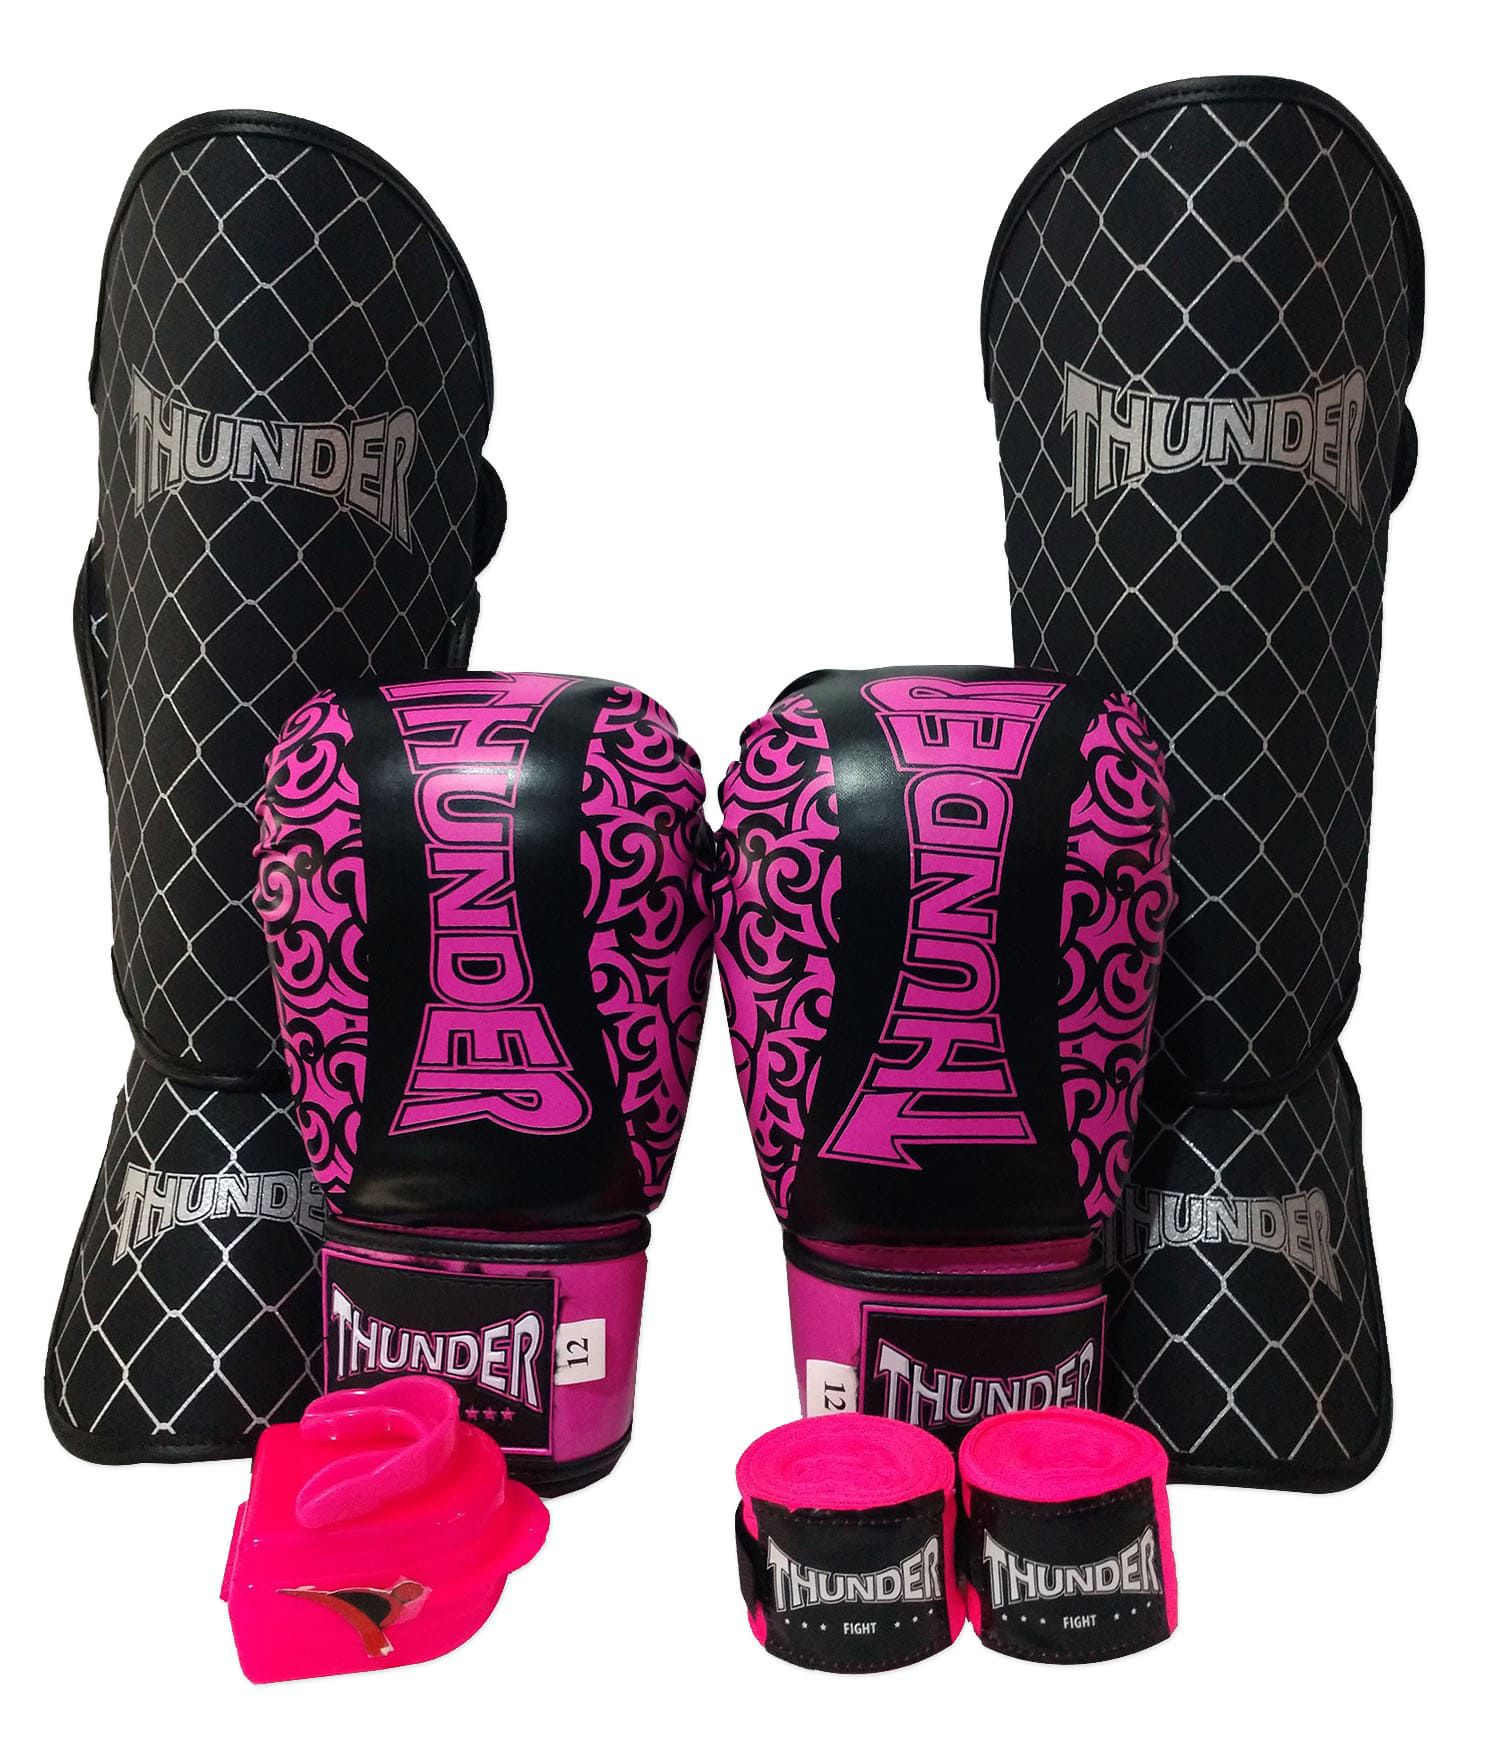 Kit de Muay Thai / Kickboxing Feminino 12oz - Preto e Rosa Maori - Thunder Fight  - PRALUTA SHOP